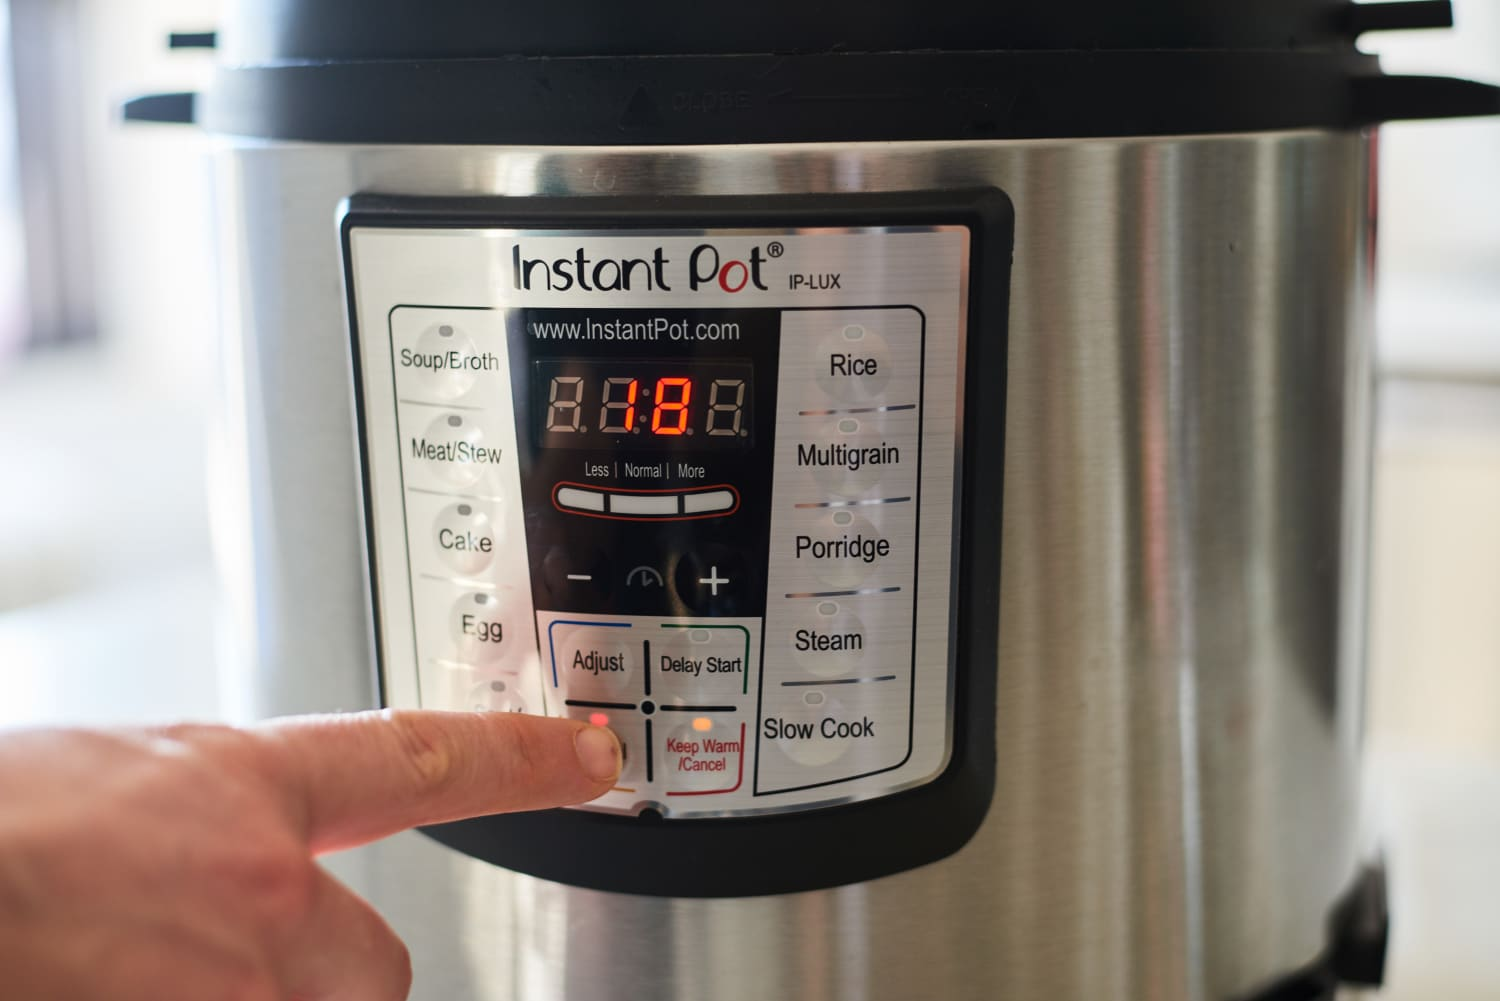 We Just Found the Perfect Gift for Instant Pot Fans